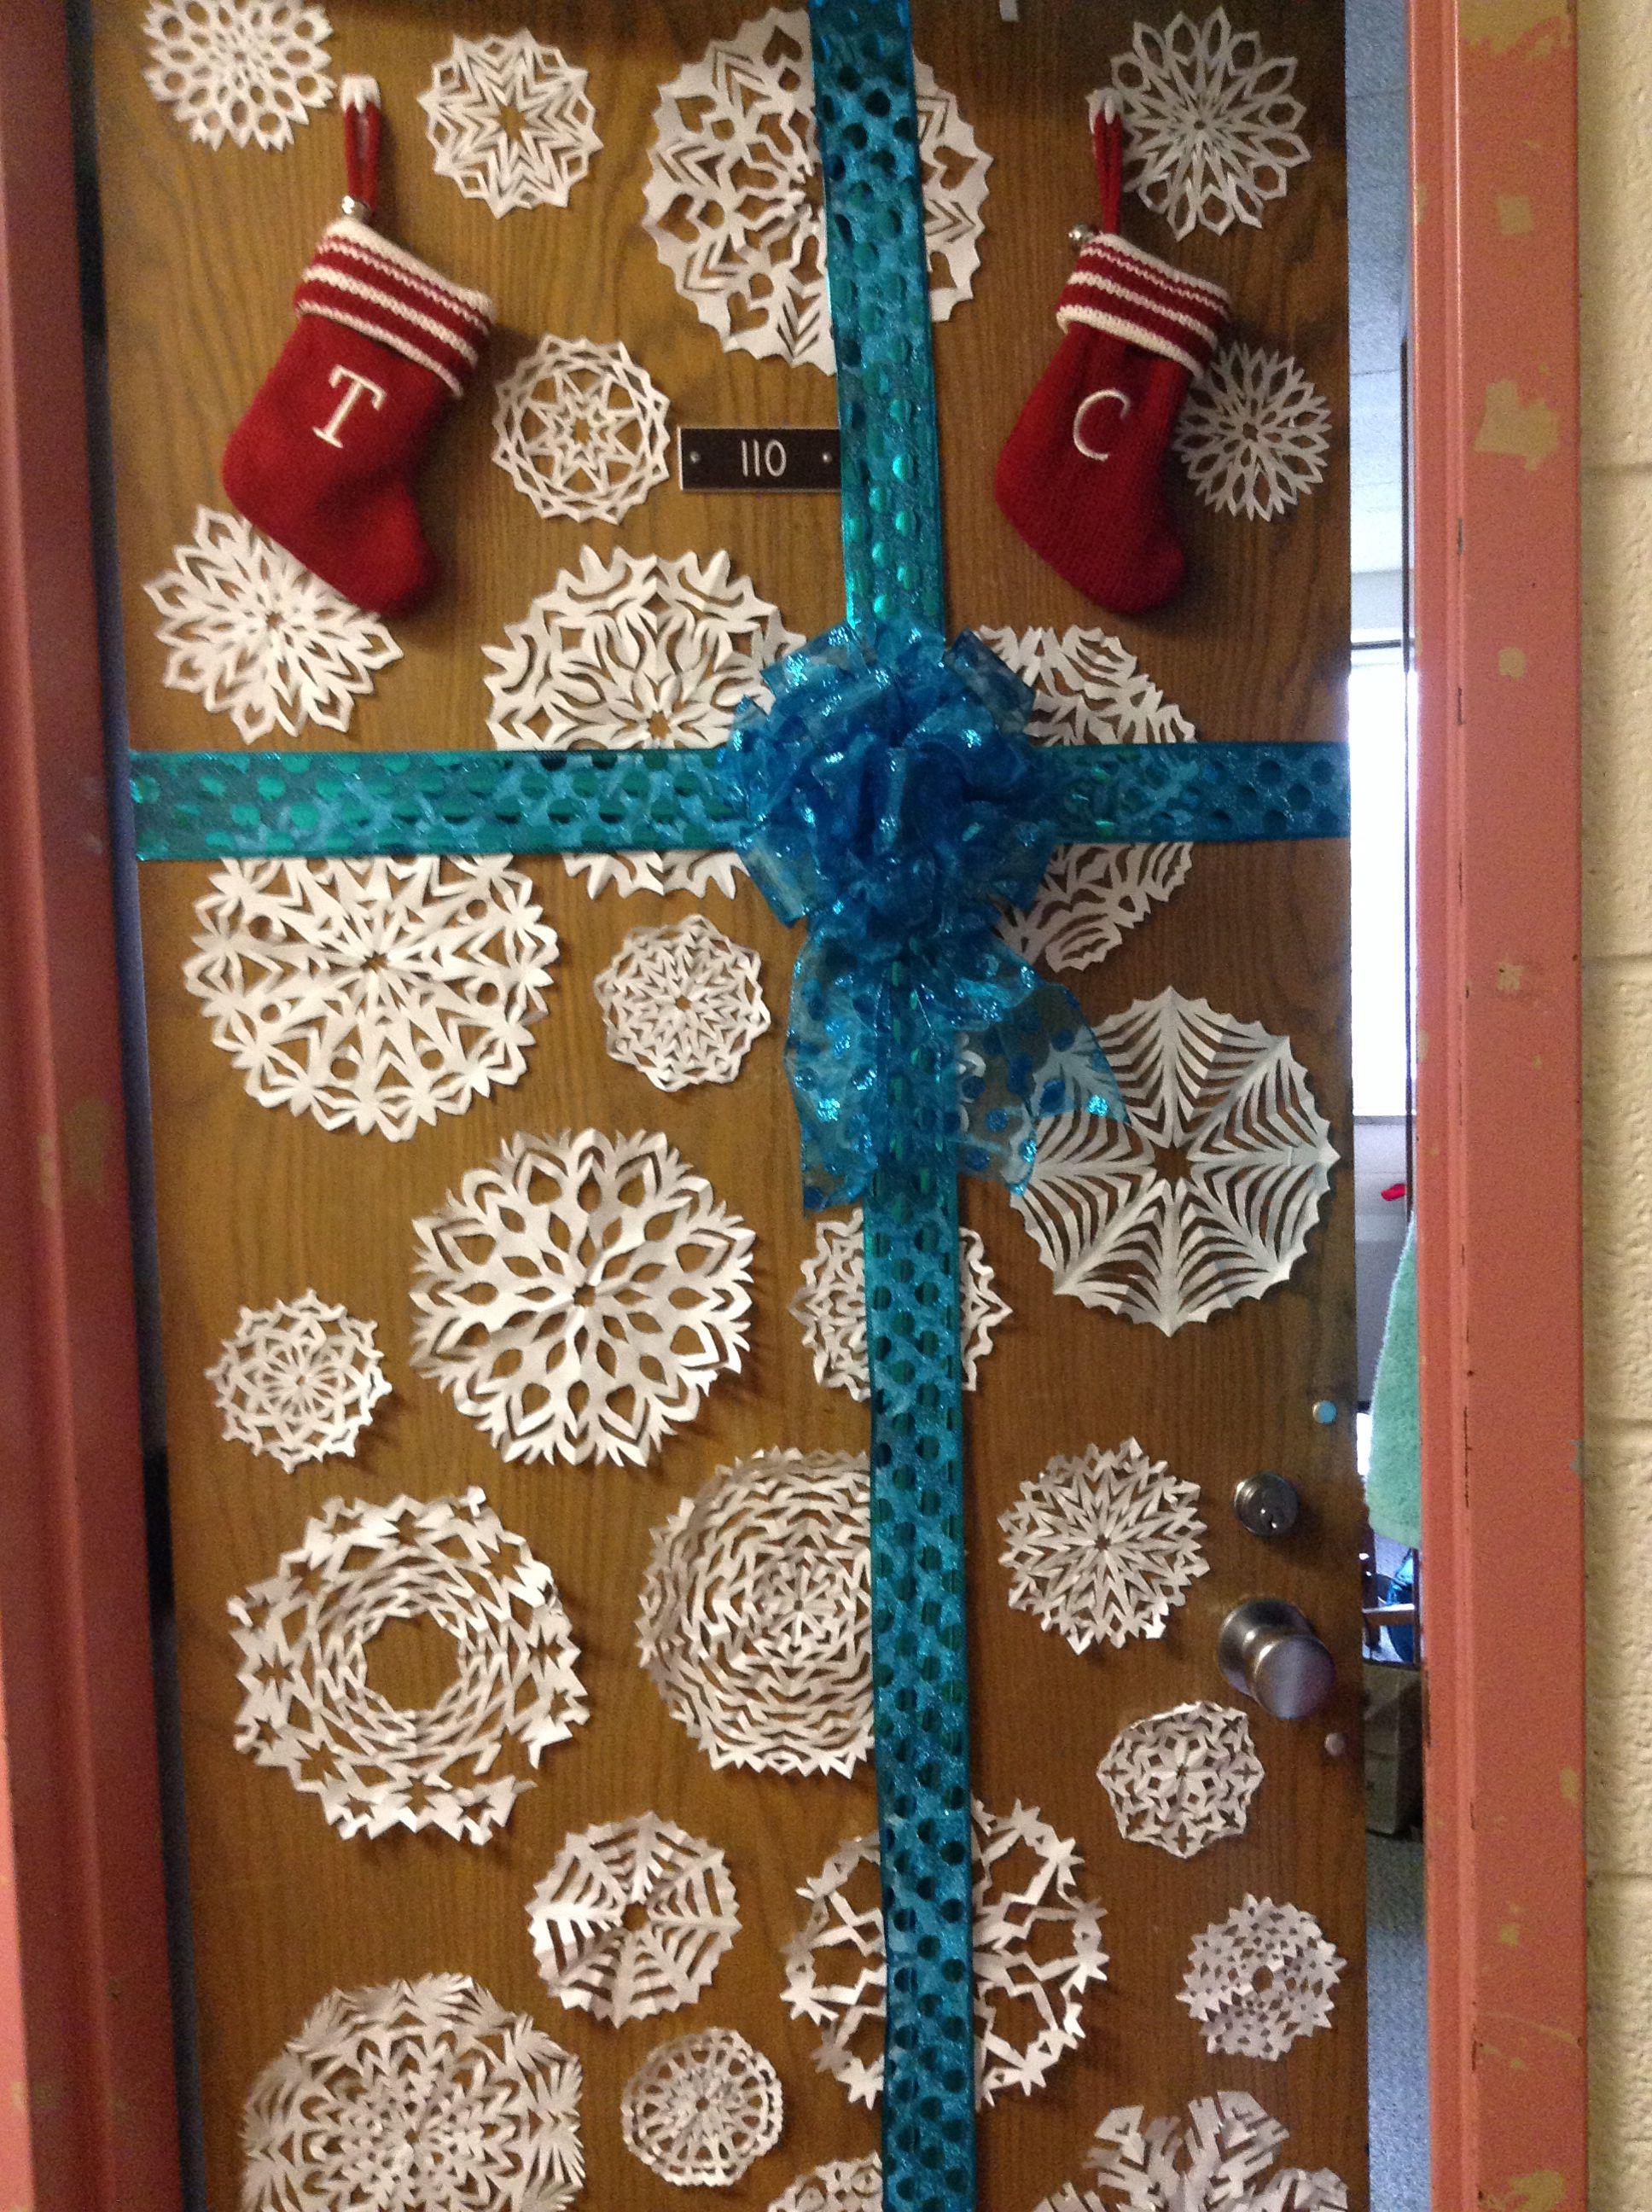 Dorm door decoration for winter | College Life | Pinterest ...